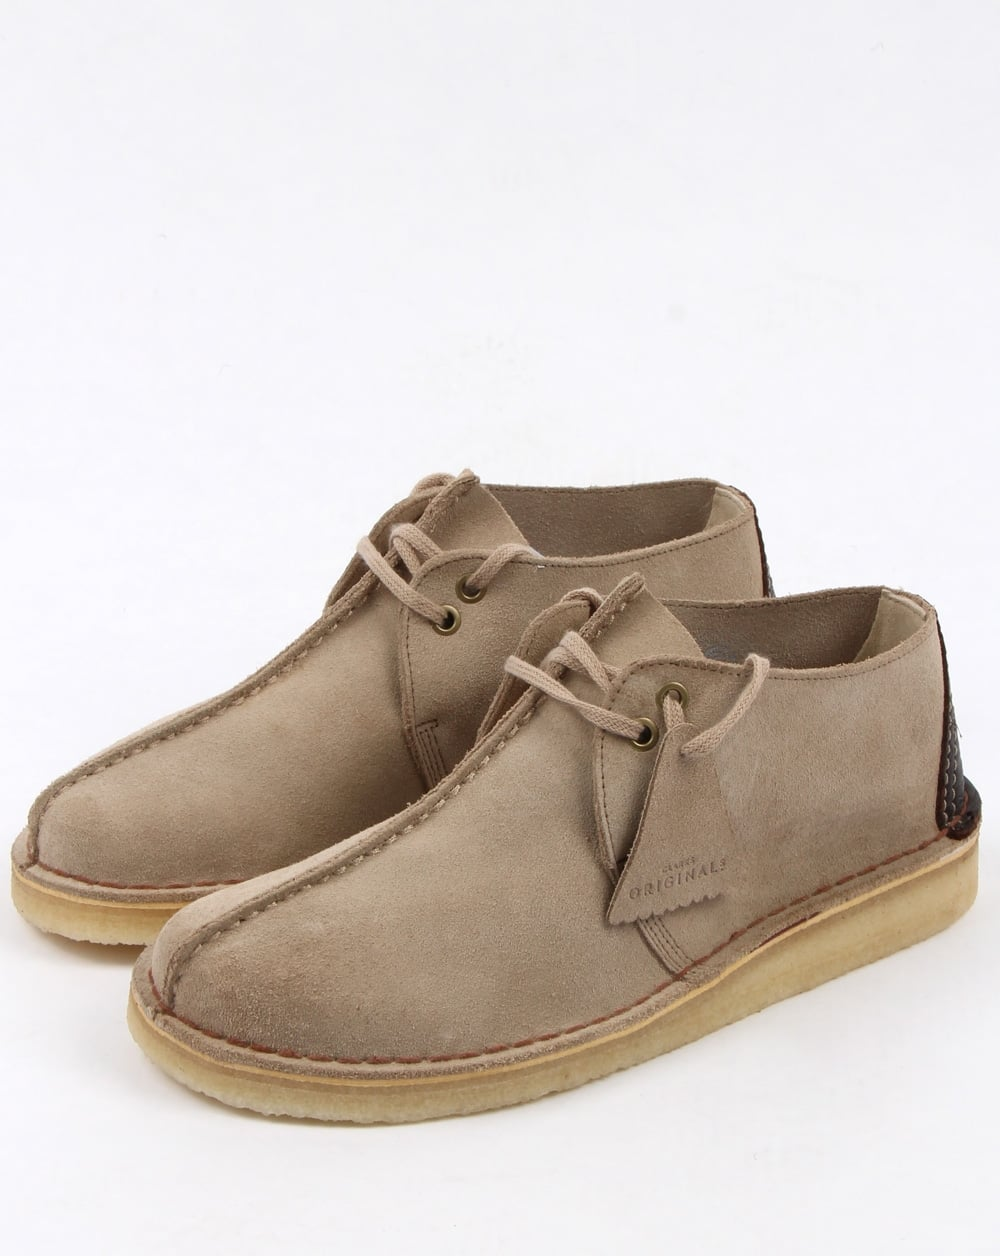 suede clarks shoes